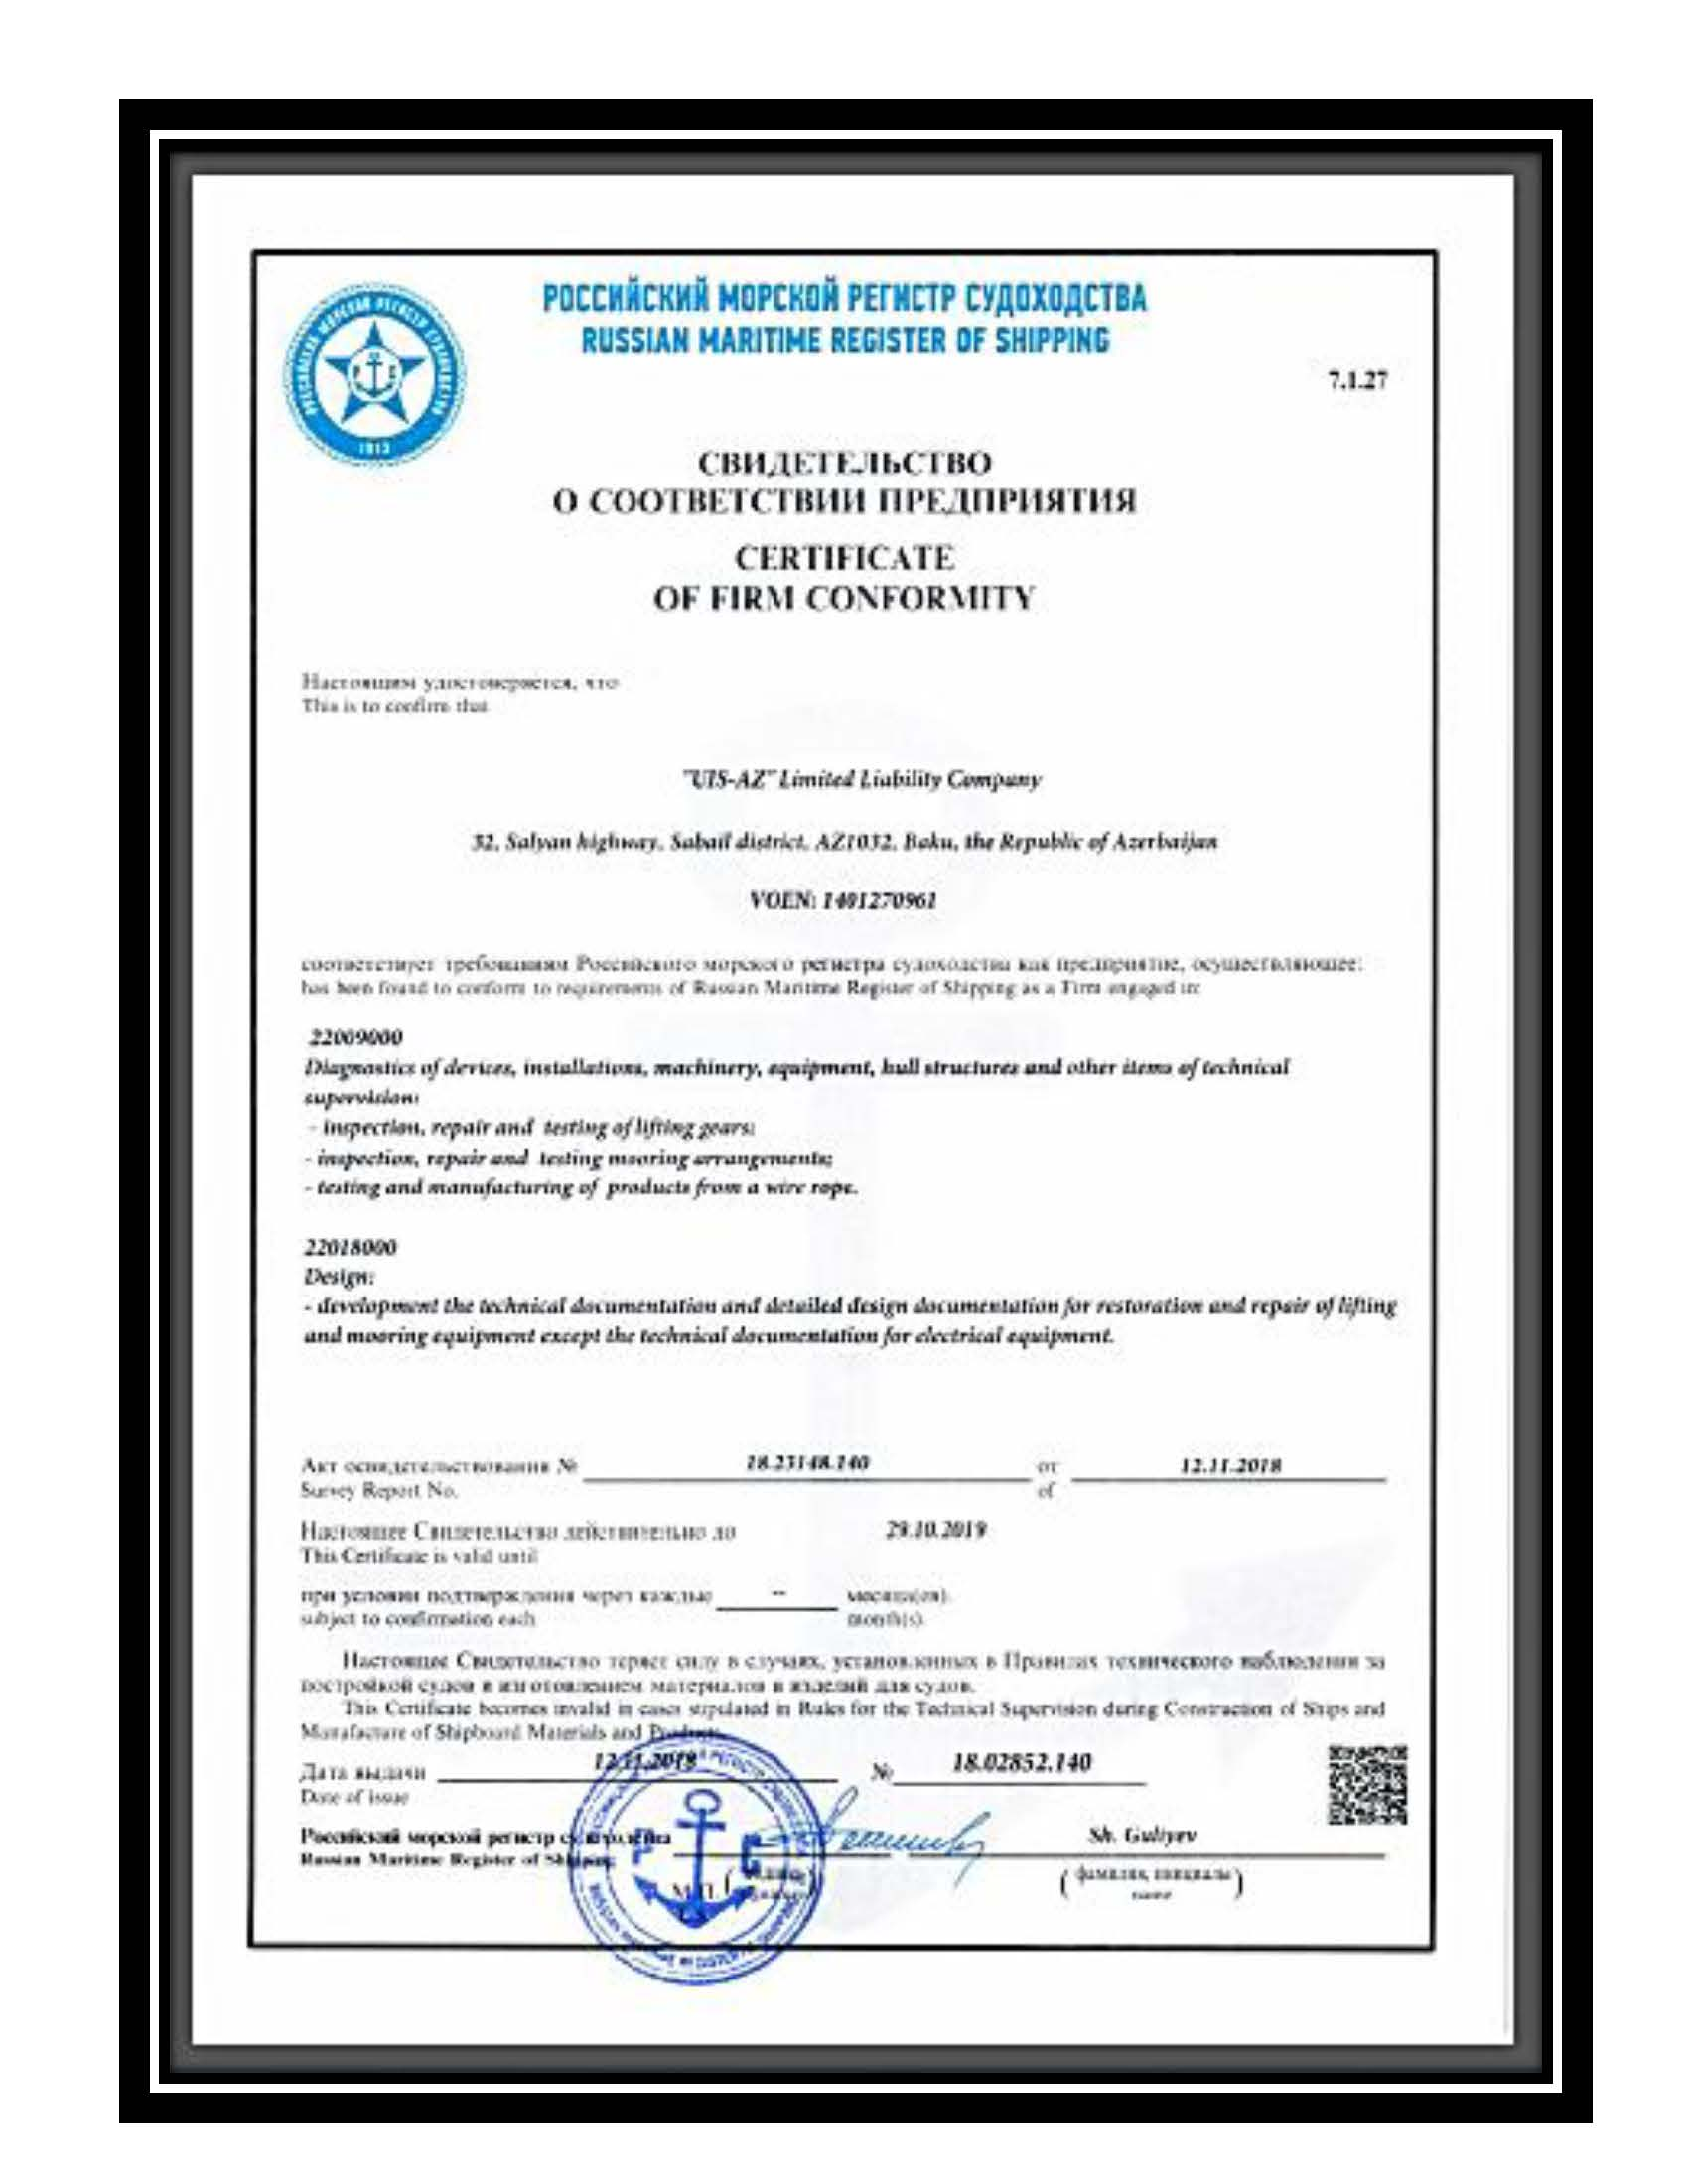 RMRS Lifting Certificate